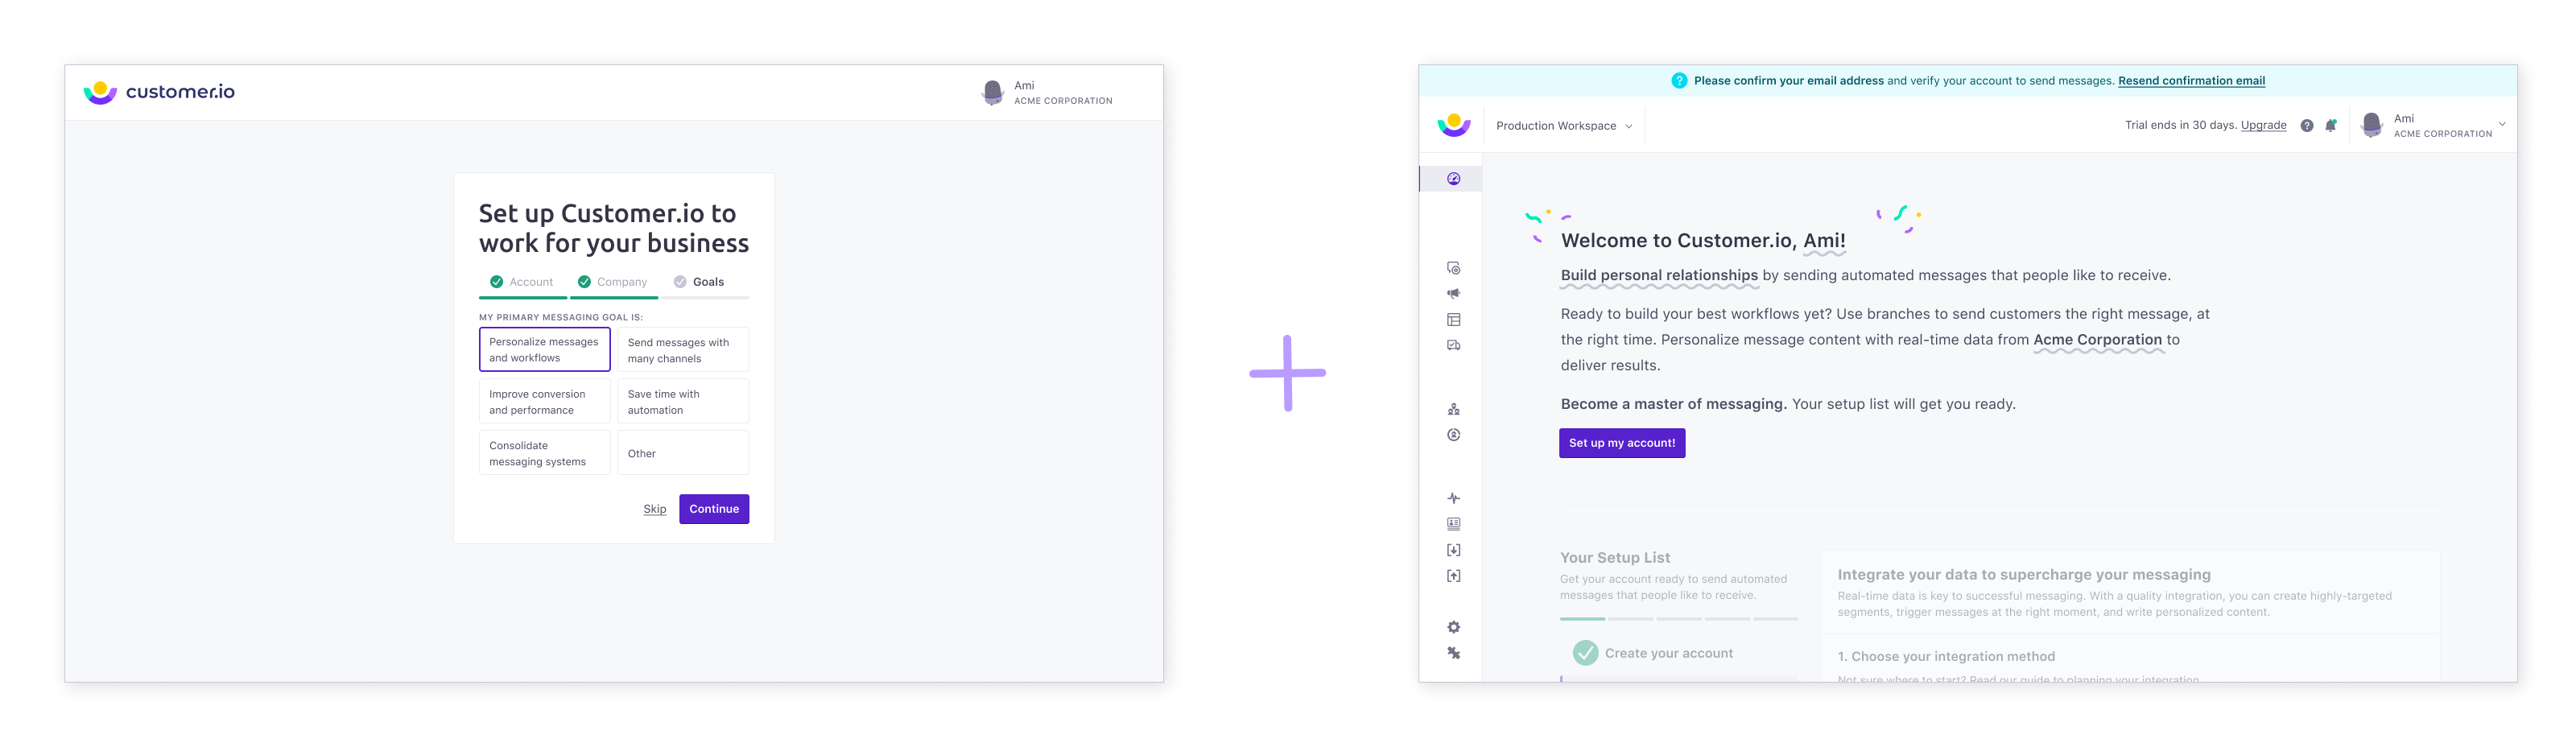 A step from the signup flow and the resulting welcome screen